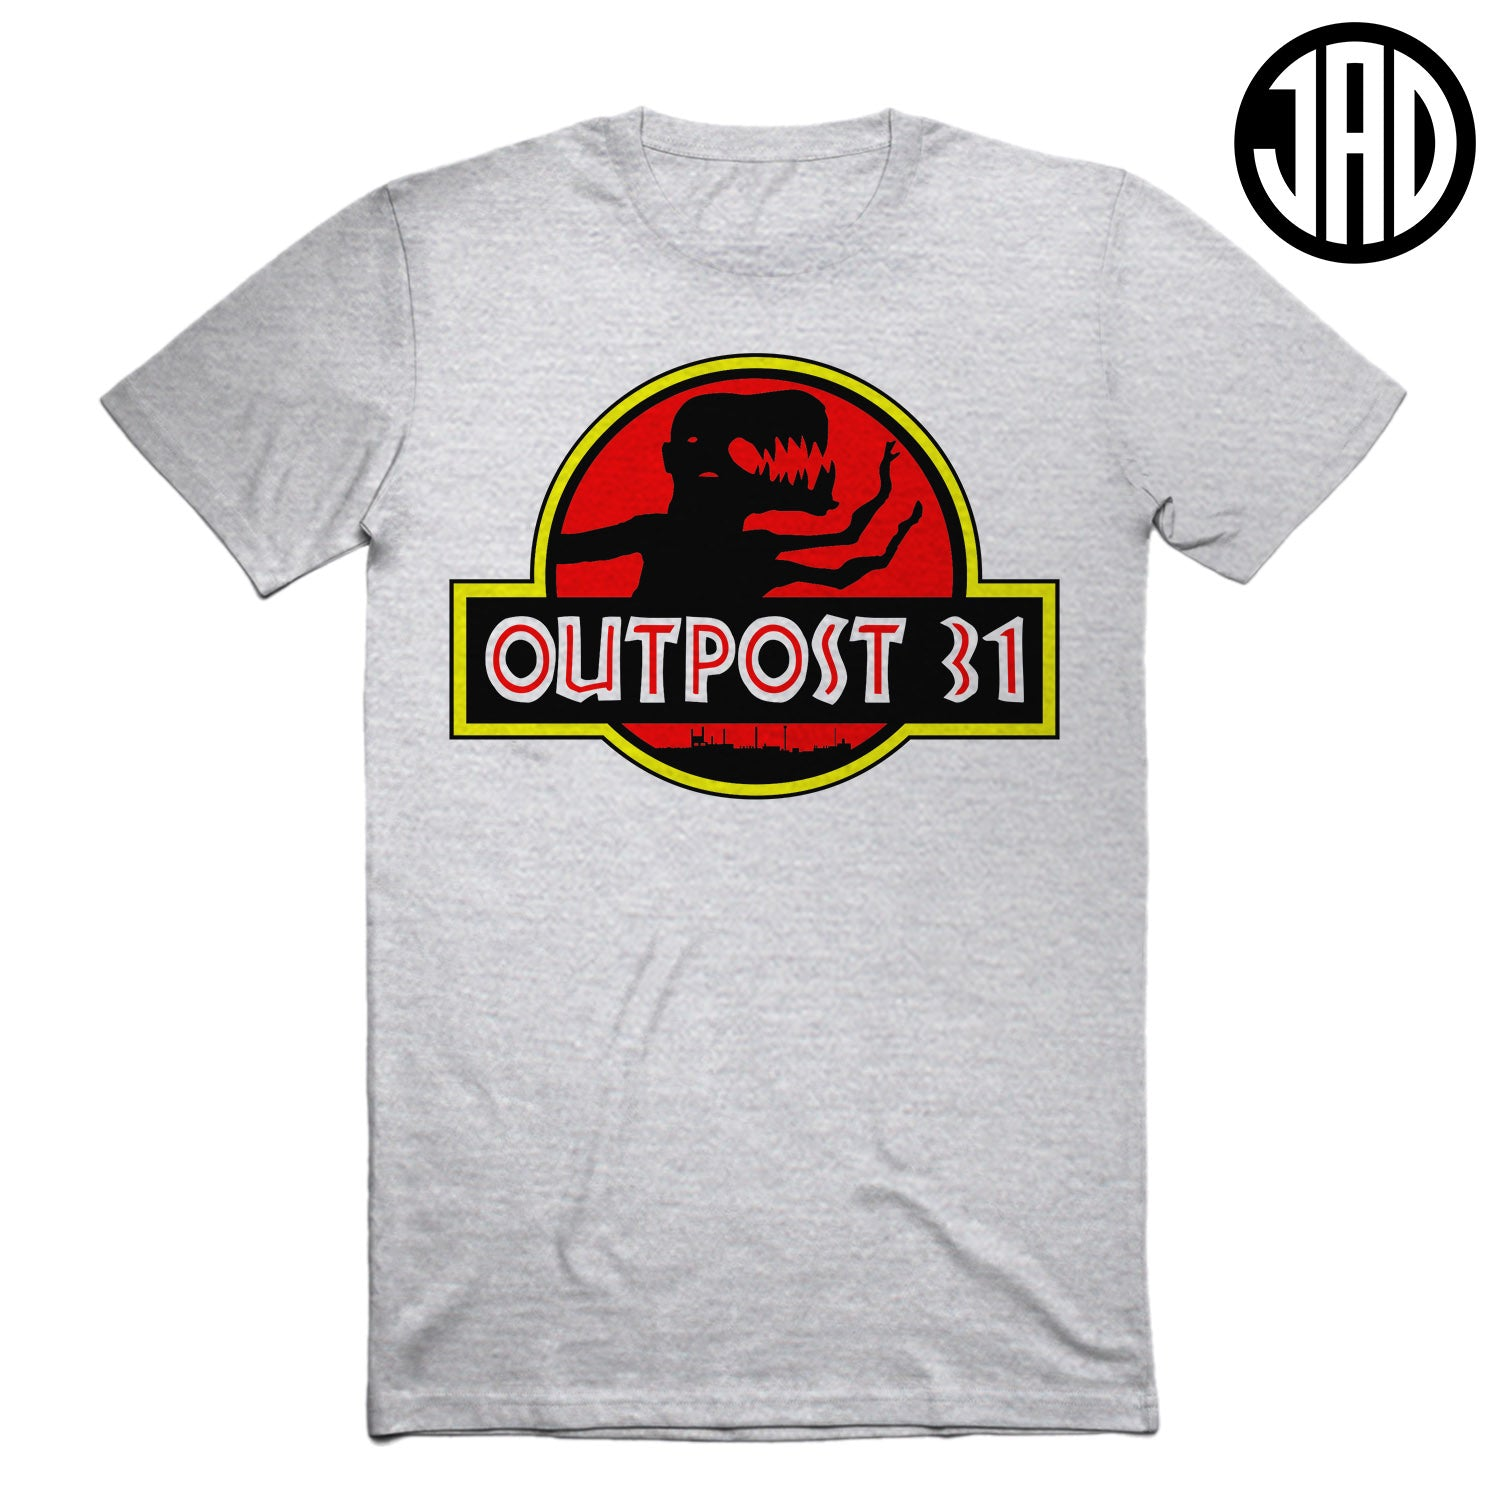 Outpost 31 - Men's Tee